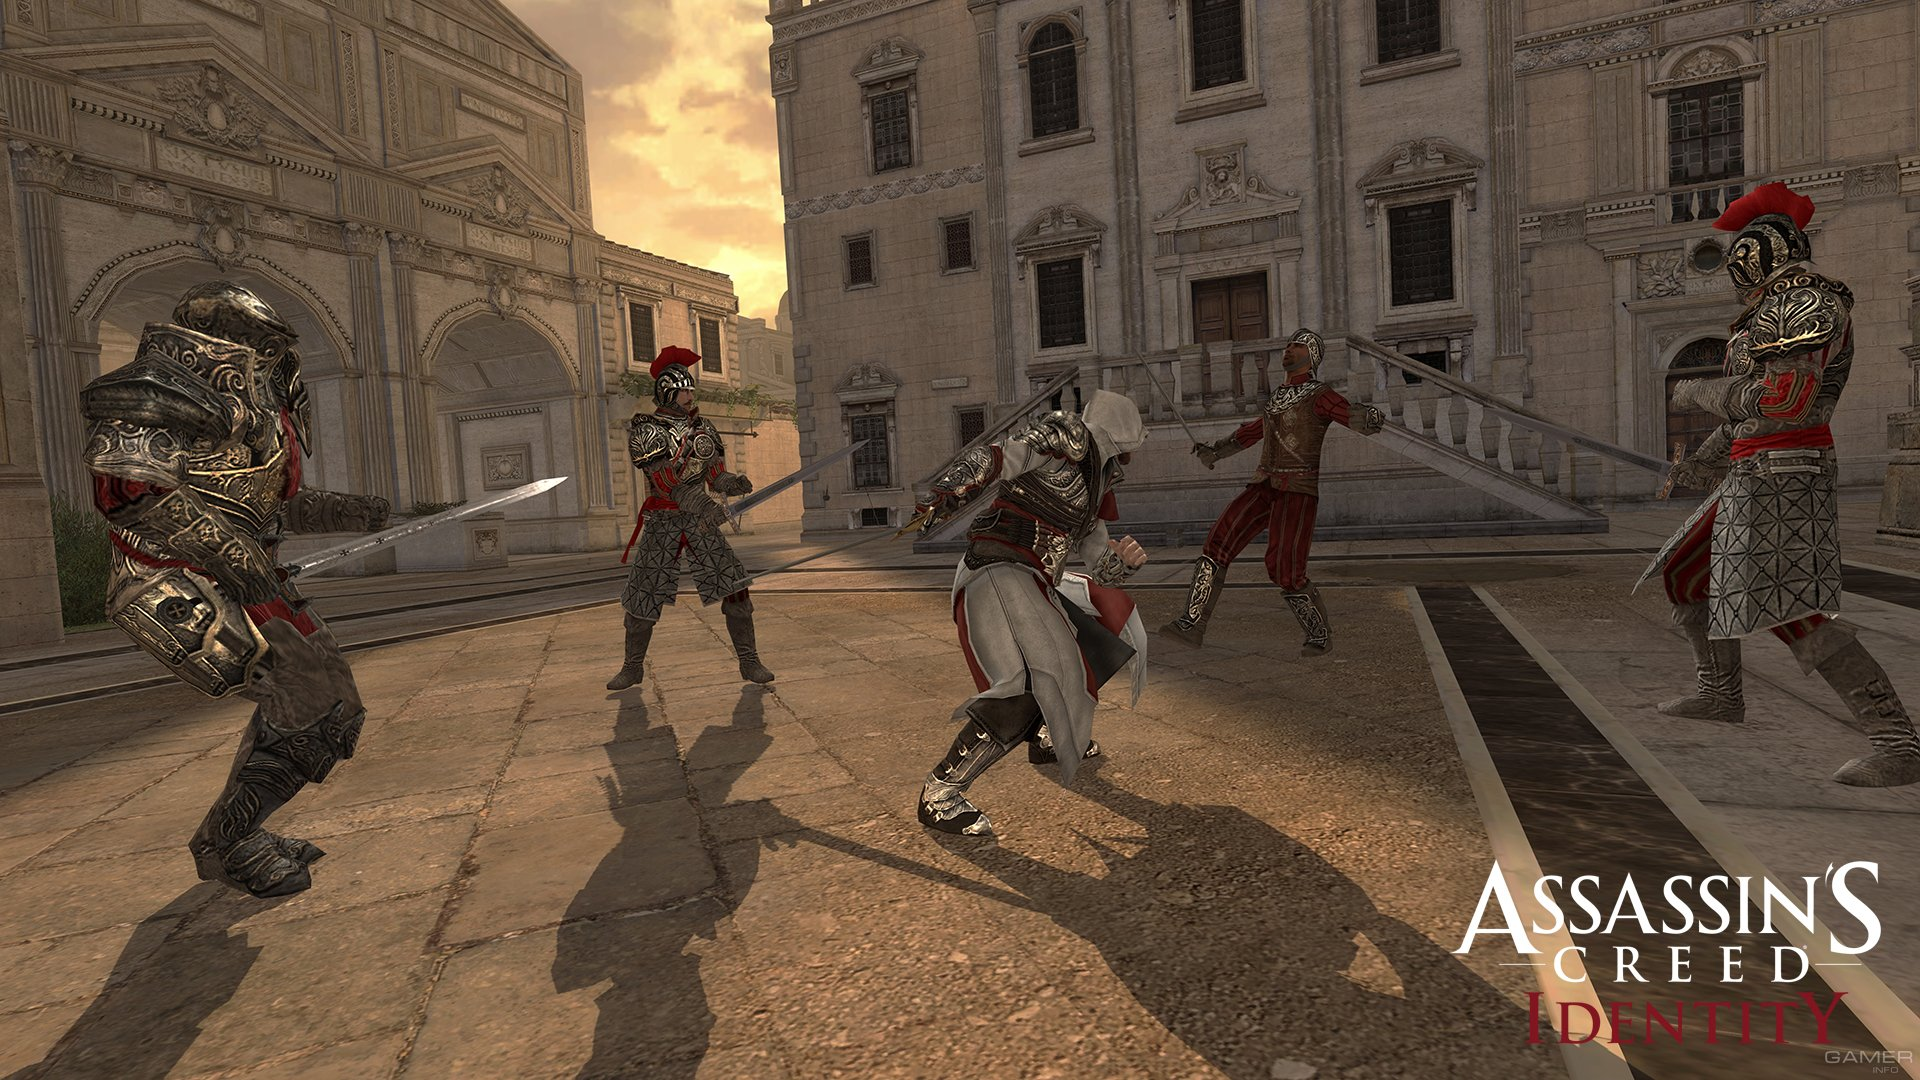 Download Assassin creed 2 ubisoft game launcher files